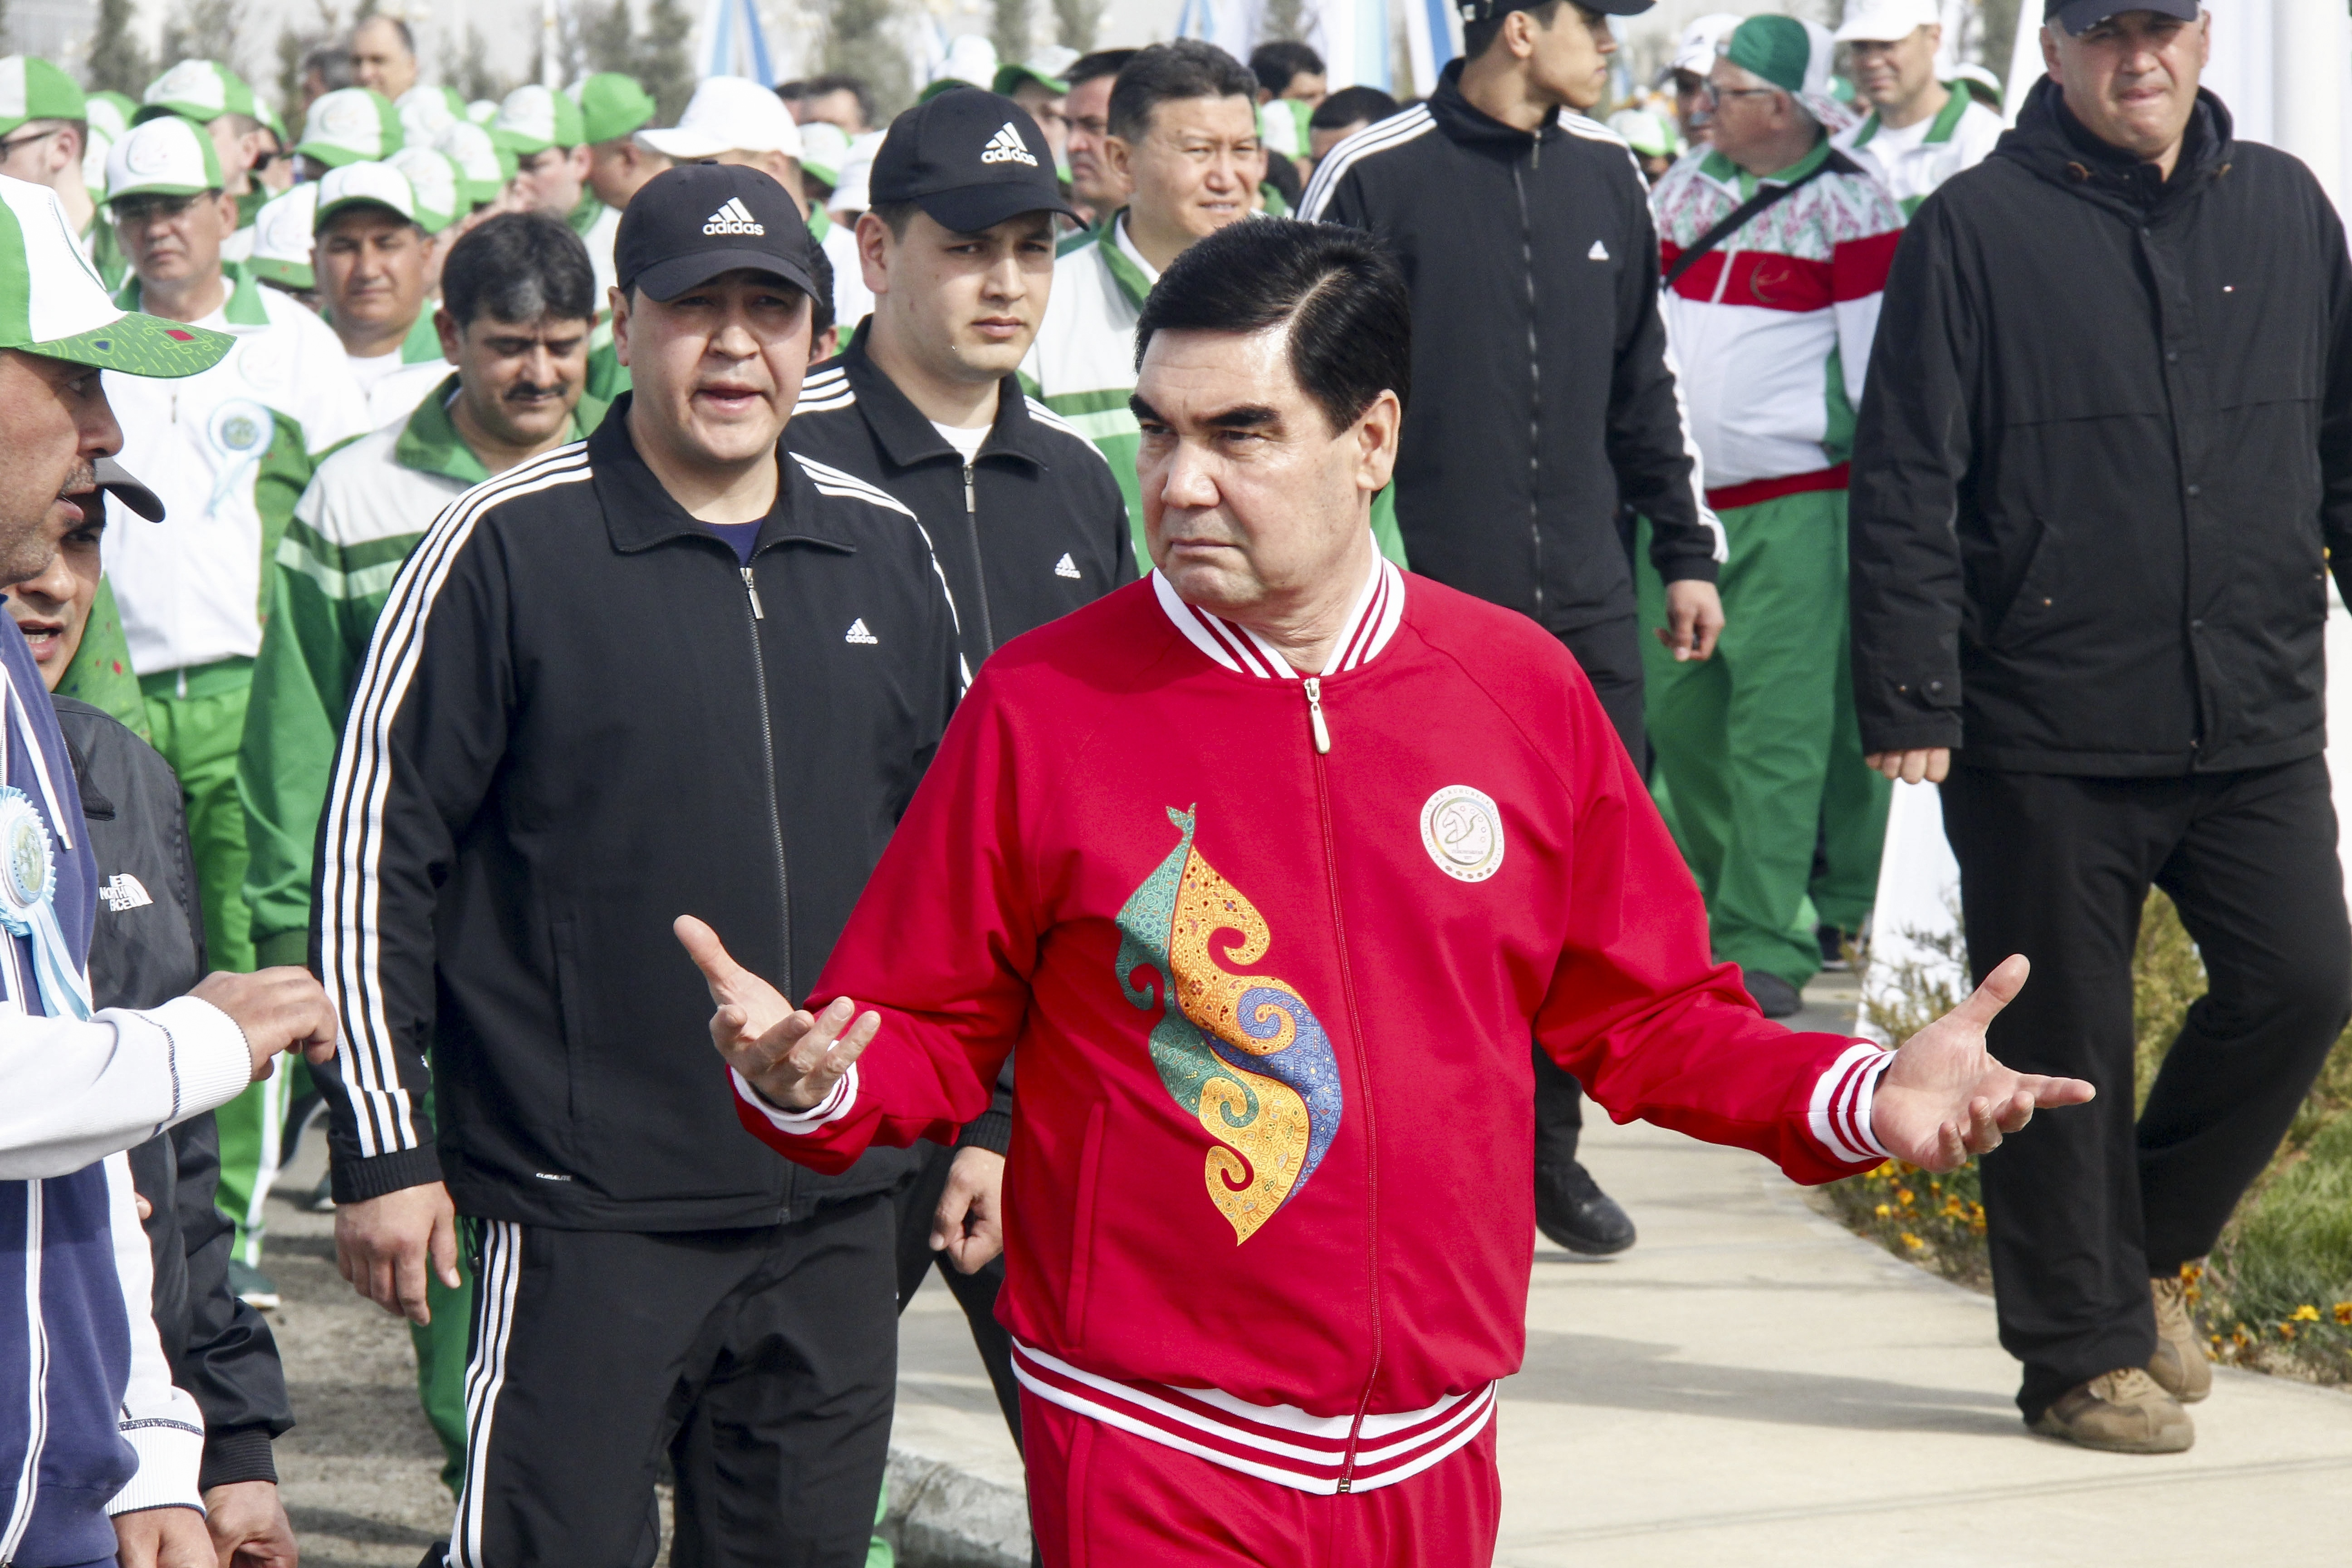 FILE - Turkmen President Gurbanguli Berdymukhamedov attends the opening ceremony of a new sports complex at the new tourist zone of Awaza on the Caspian Sea in Turkmenistan, April 7, 2017. Turkmenistan is hosting the fifth Asian Indoor and Martial Ar...